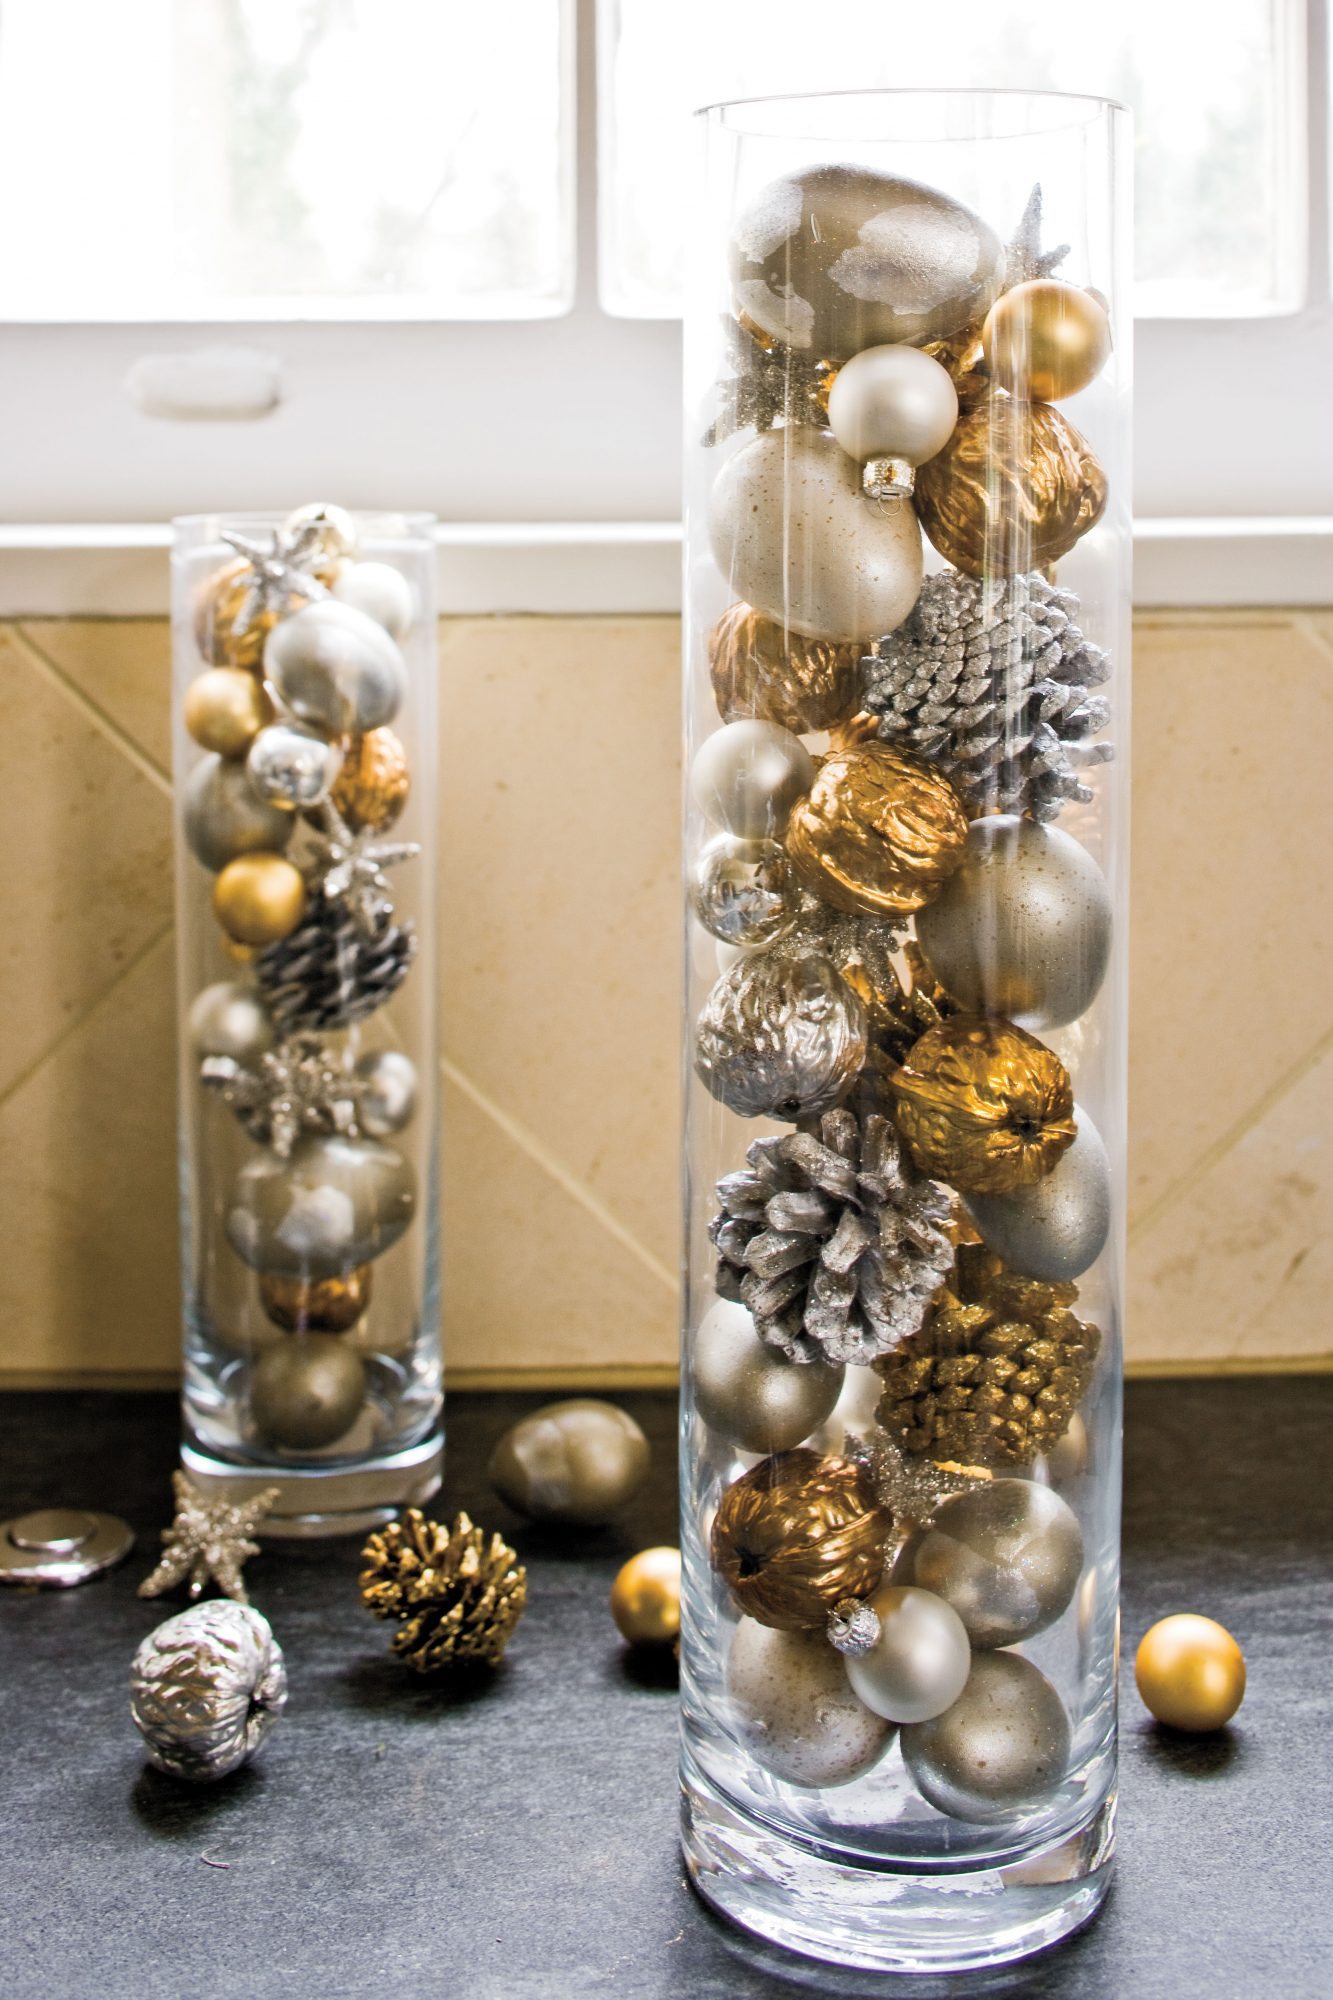 Christmas Decorating Ideas: Ornaments in Cylinders